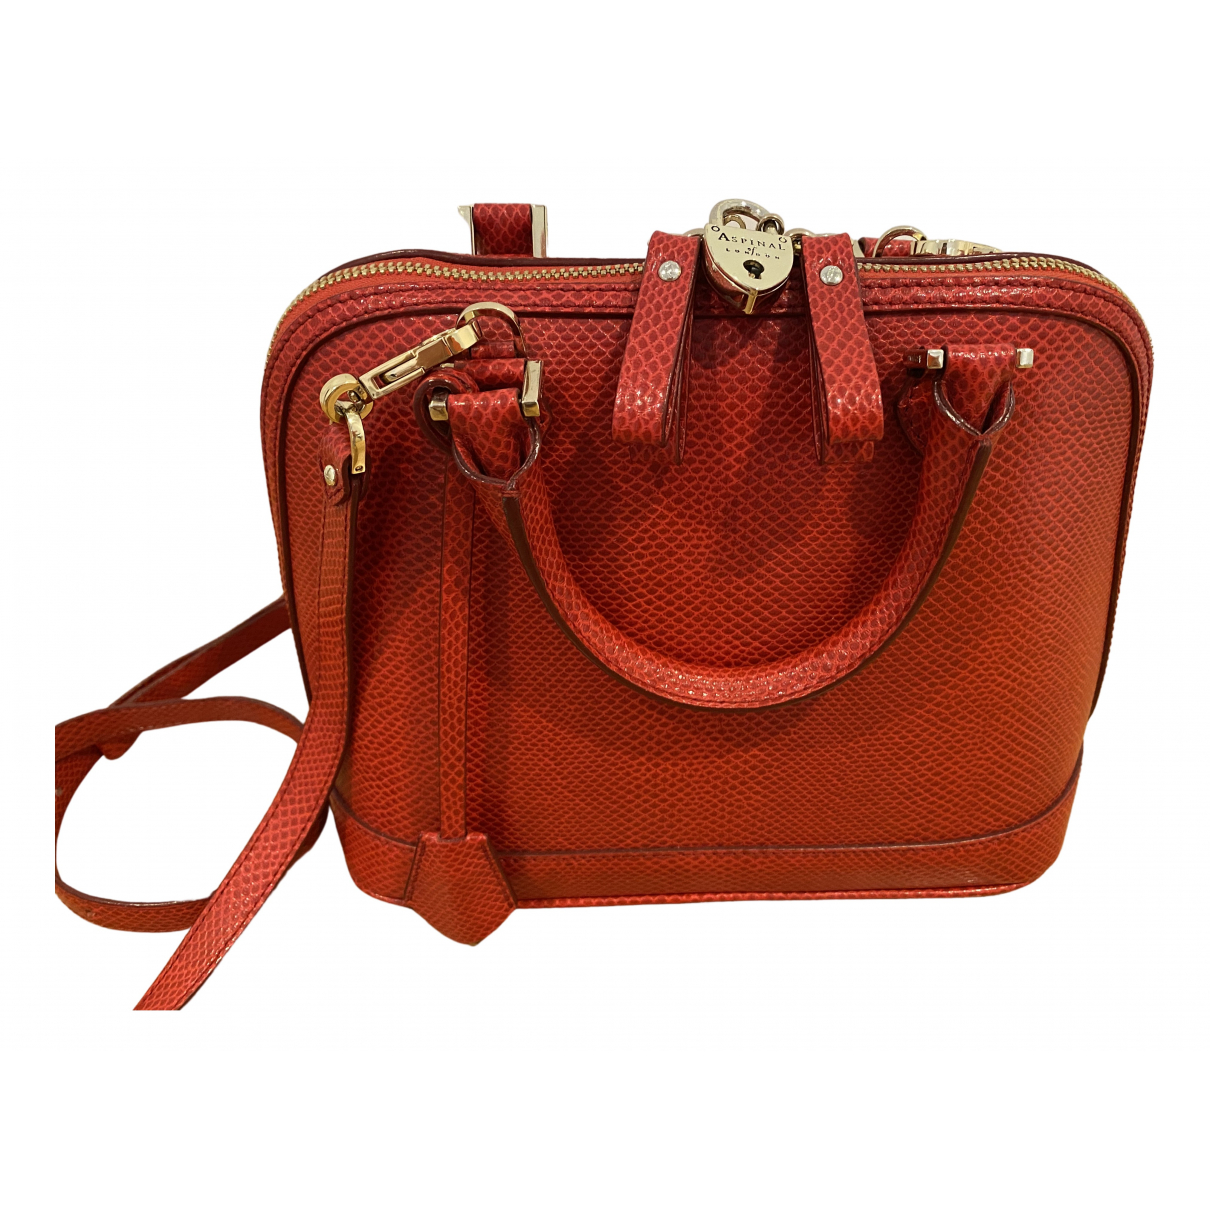 Aspinal Of London \N Red Leather handbag for Women \N